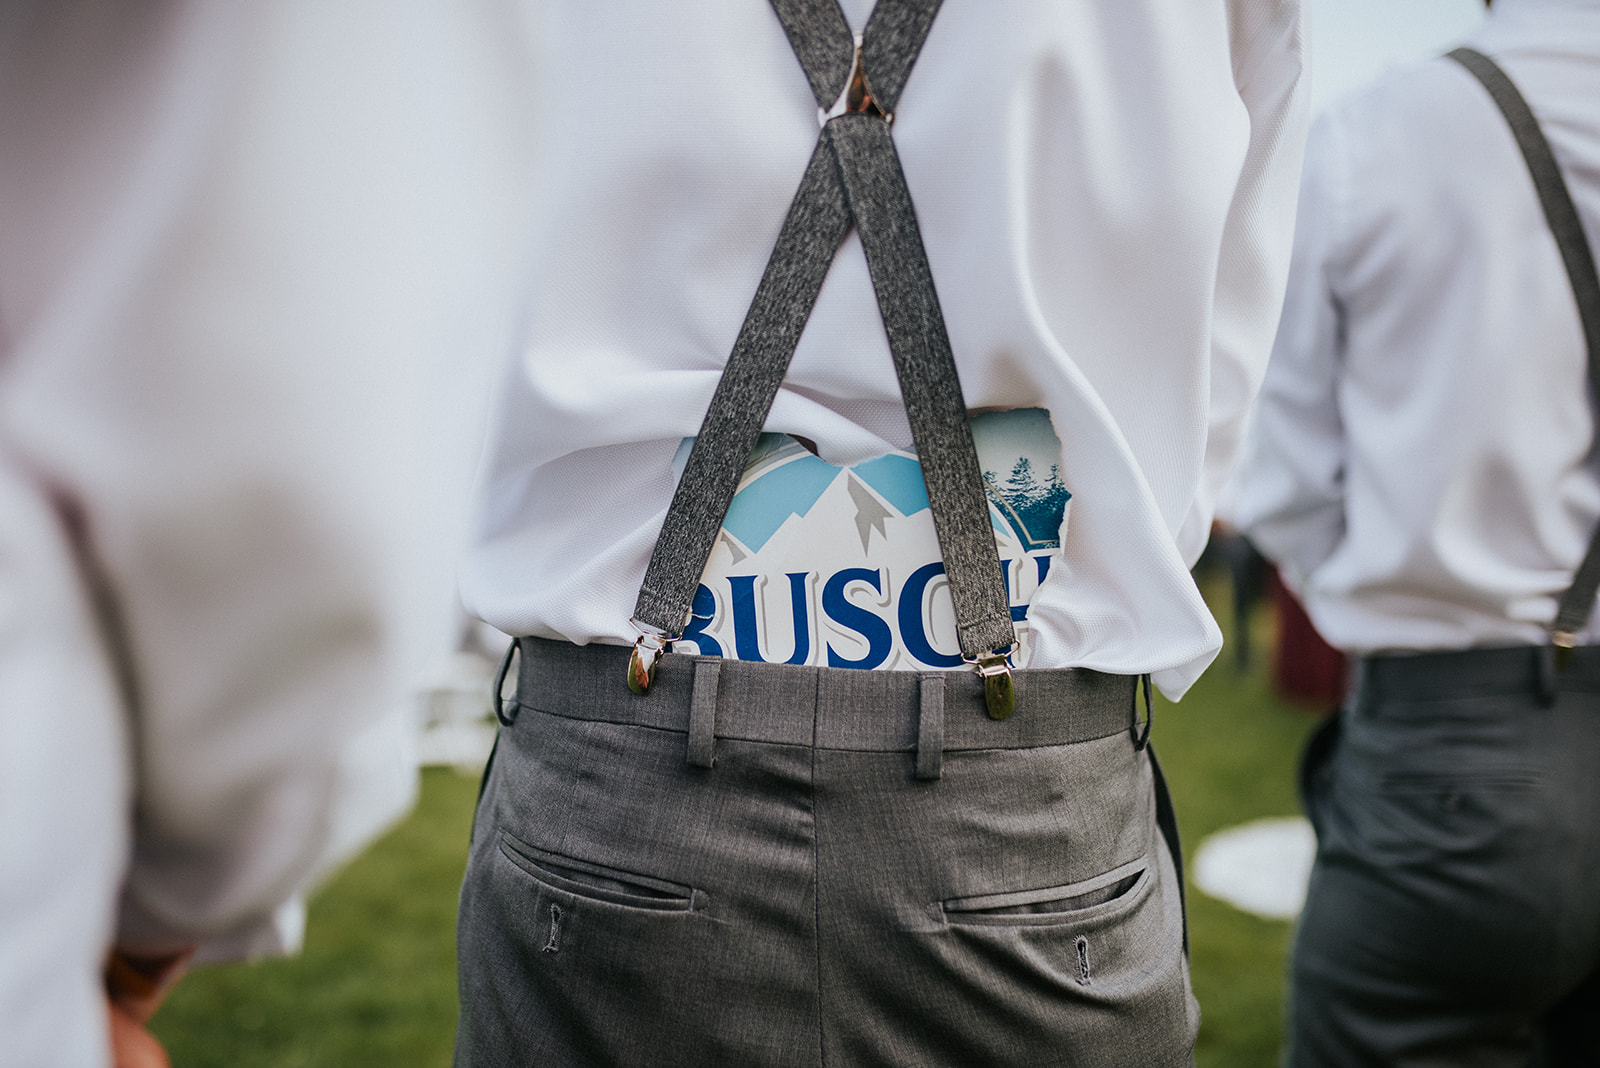 overthevineswisconsinwedding_0659.jpg